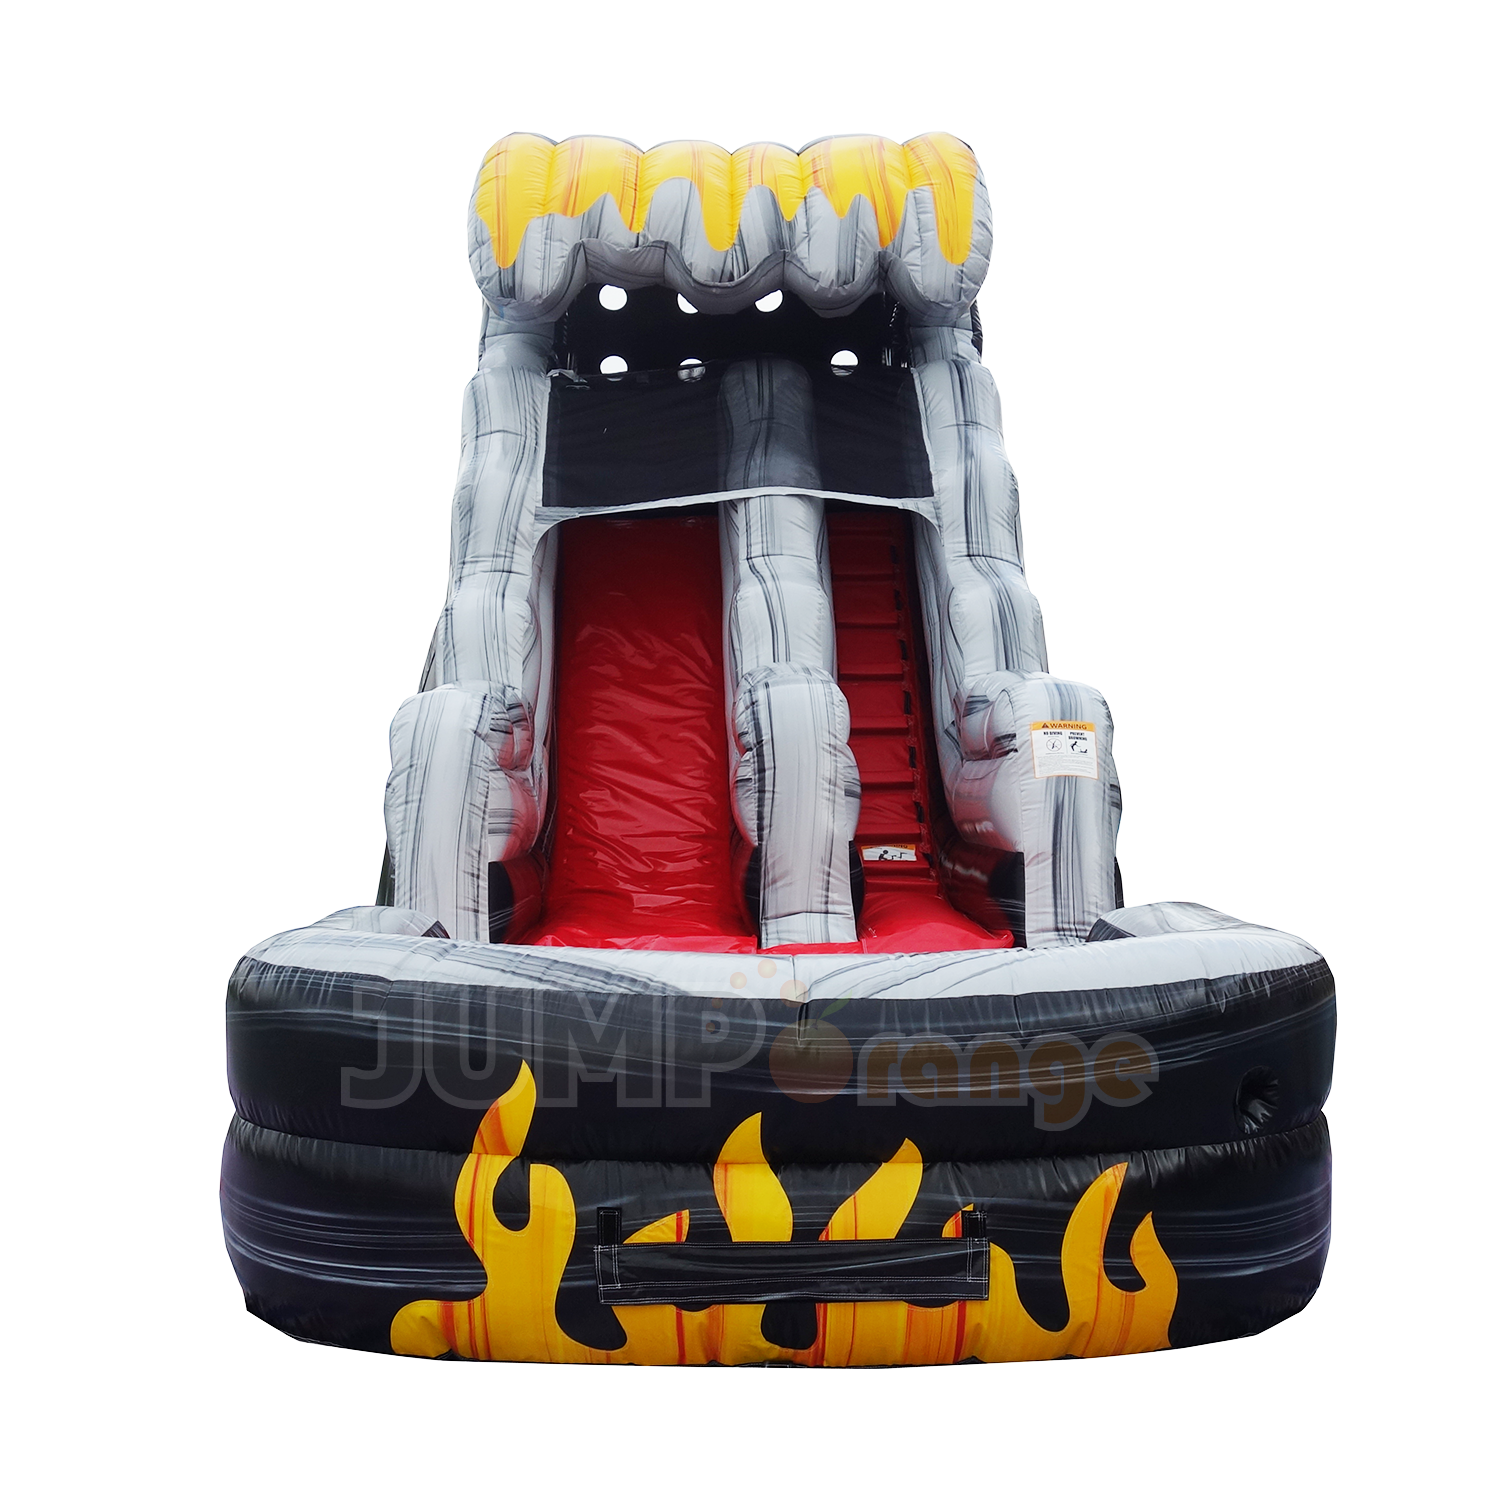 FLAME 15 FT SLIDE